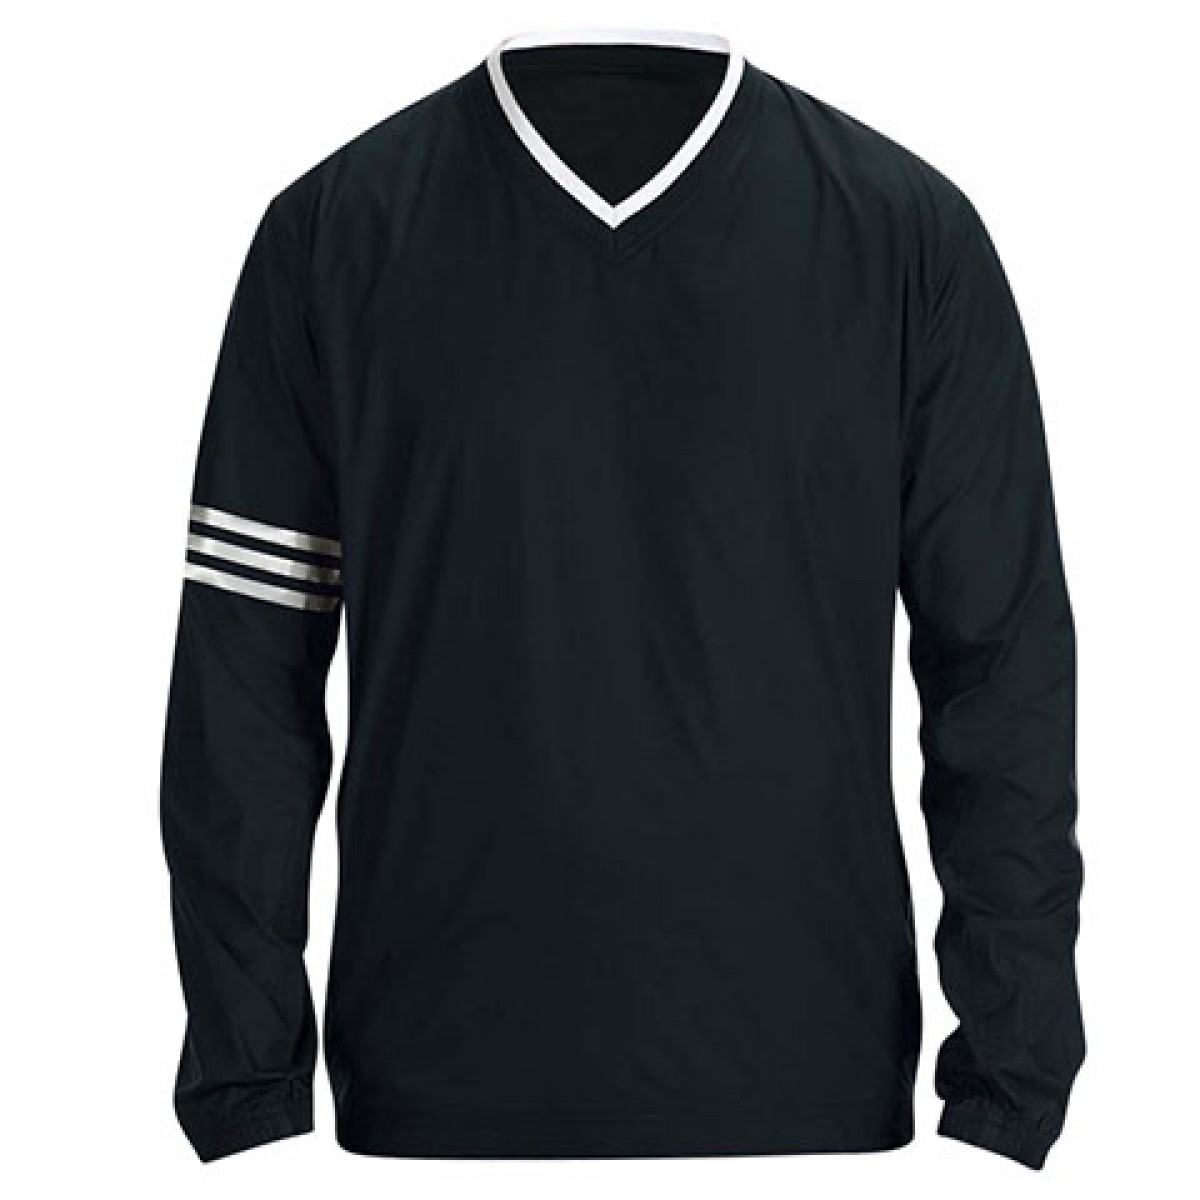 Adidas ClimaLite V-Neck Long Sleeve Wind Shirt-Black-2XL